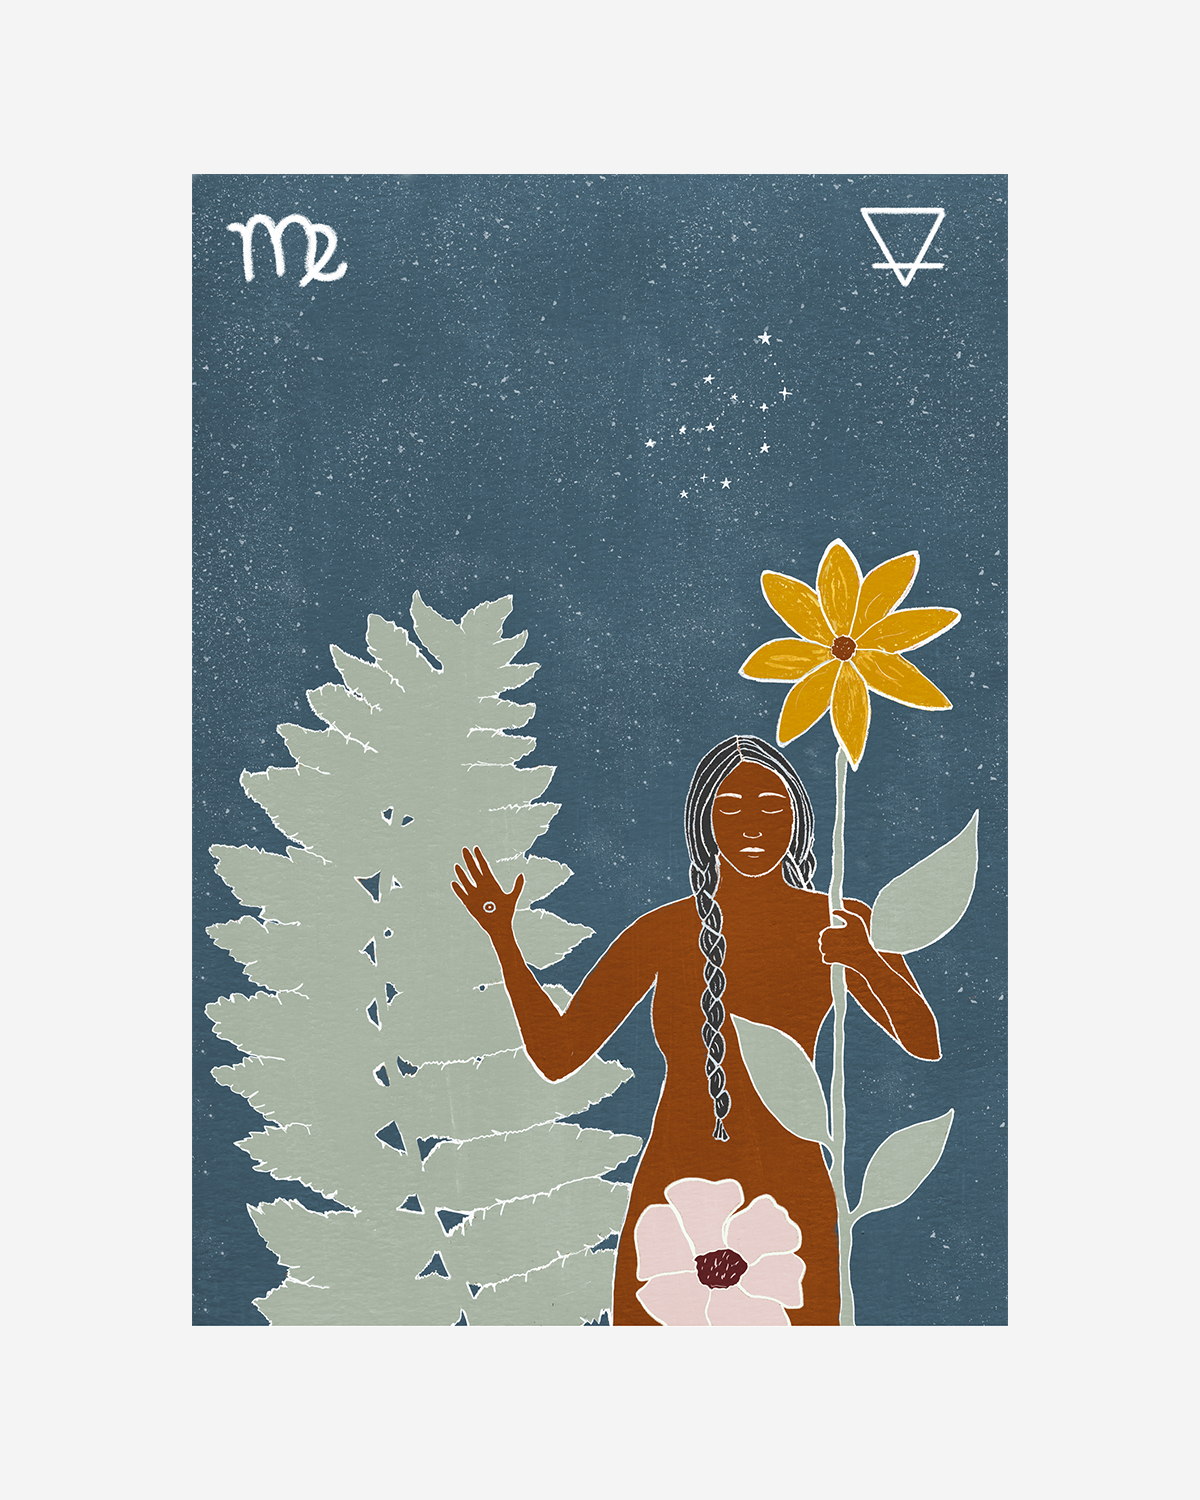 Seeds of Spells x Sisters Village 'Virgo' Print